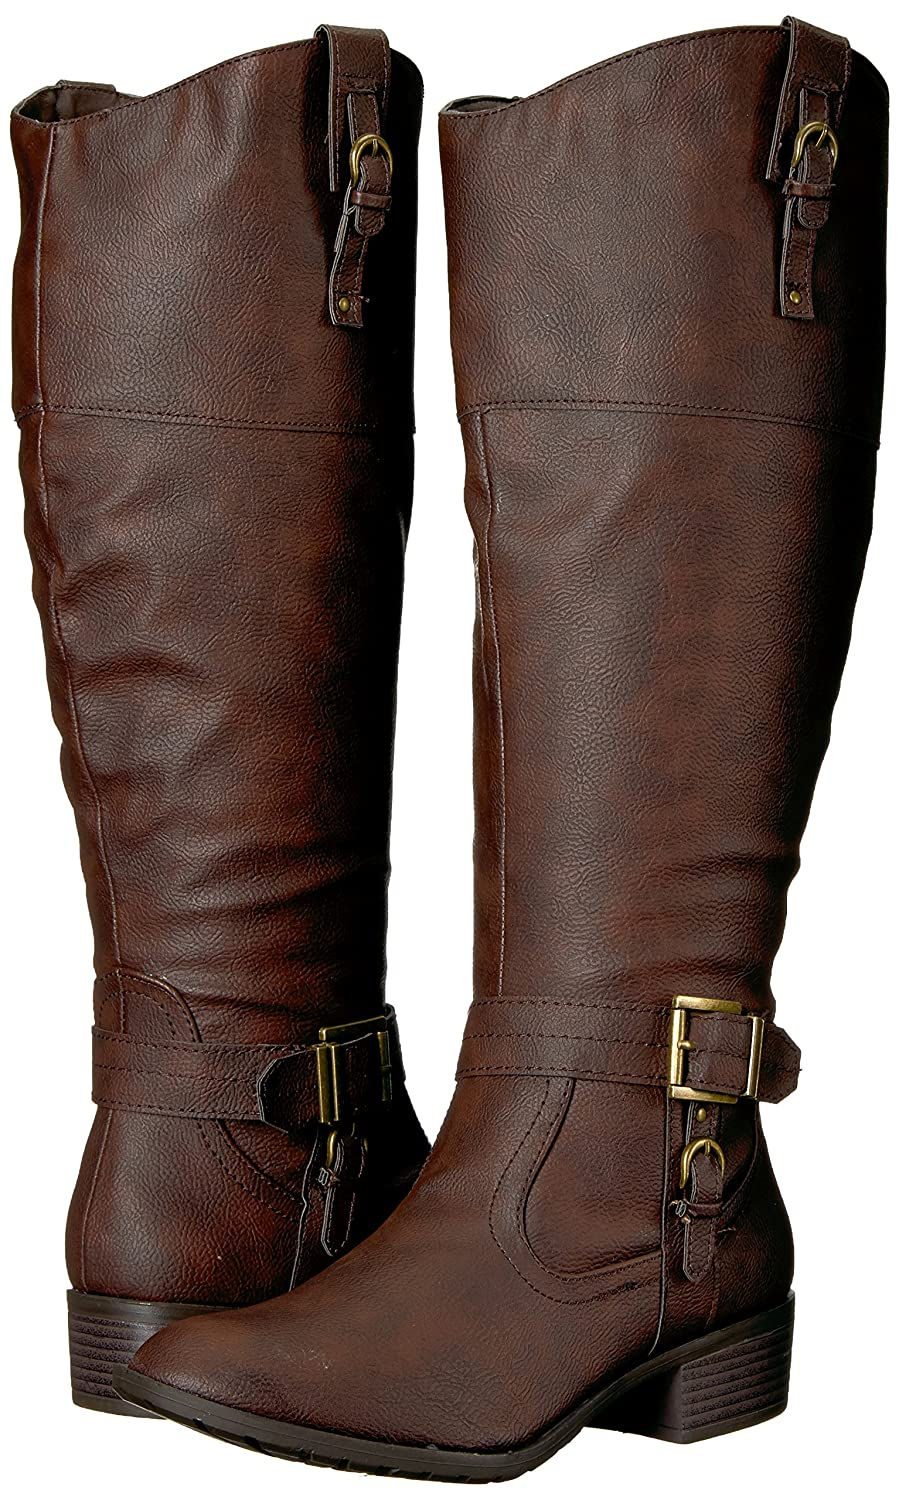 Rampage Women's Ivelia Fashion Knee High Casual Wide Riding Boot (Available In Wide Casual Calf) B076HCHFLK 9.5 M US Wide Shaft|Brown 66b9e3